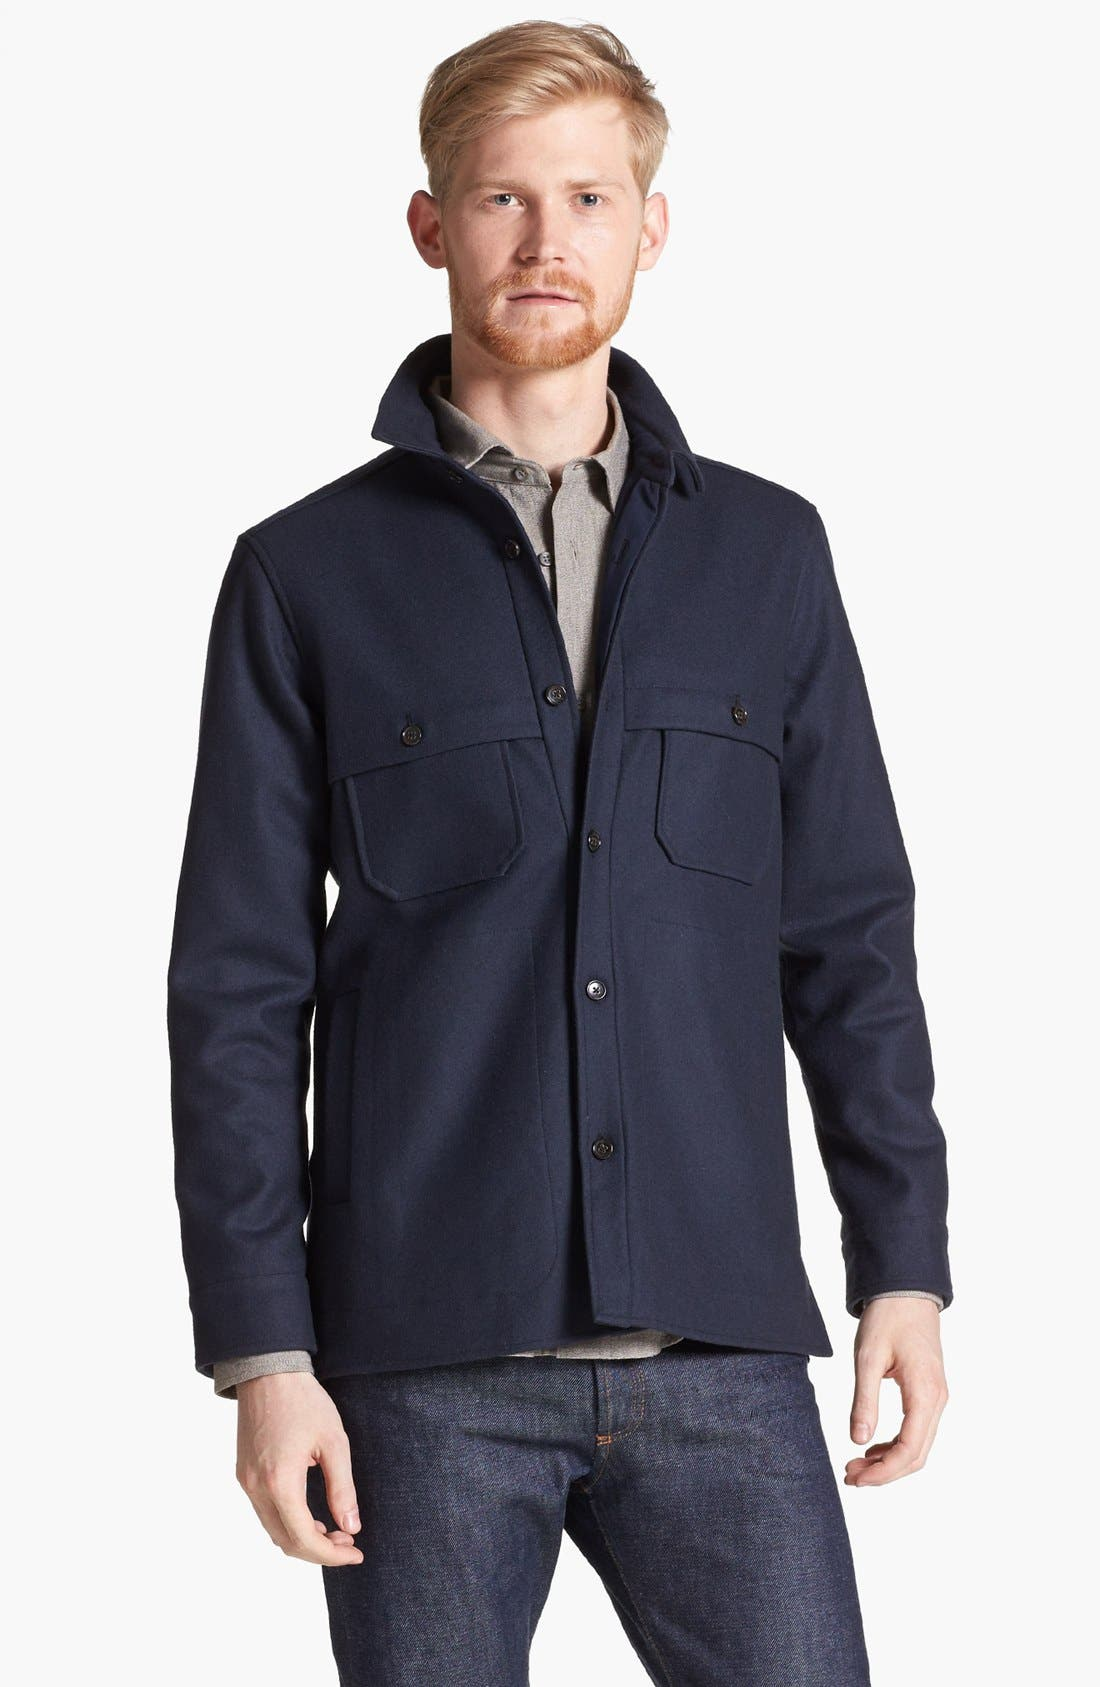 Main Image - Pendleton Portland Collection 'Scappoose' Lightweight Wool Jacket